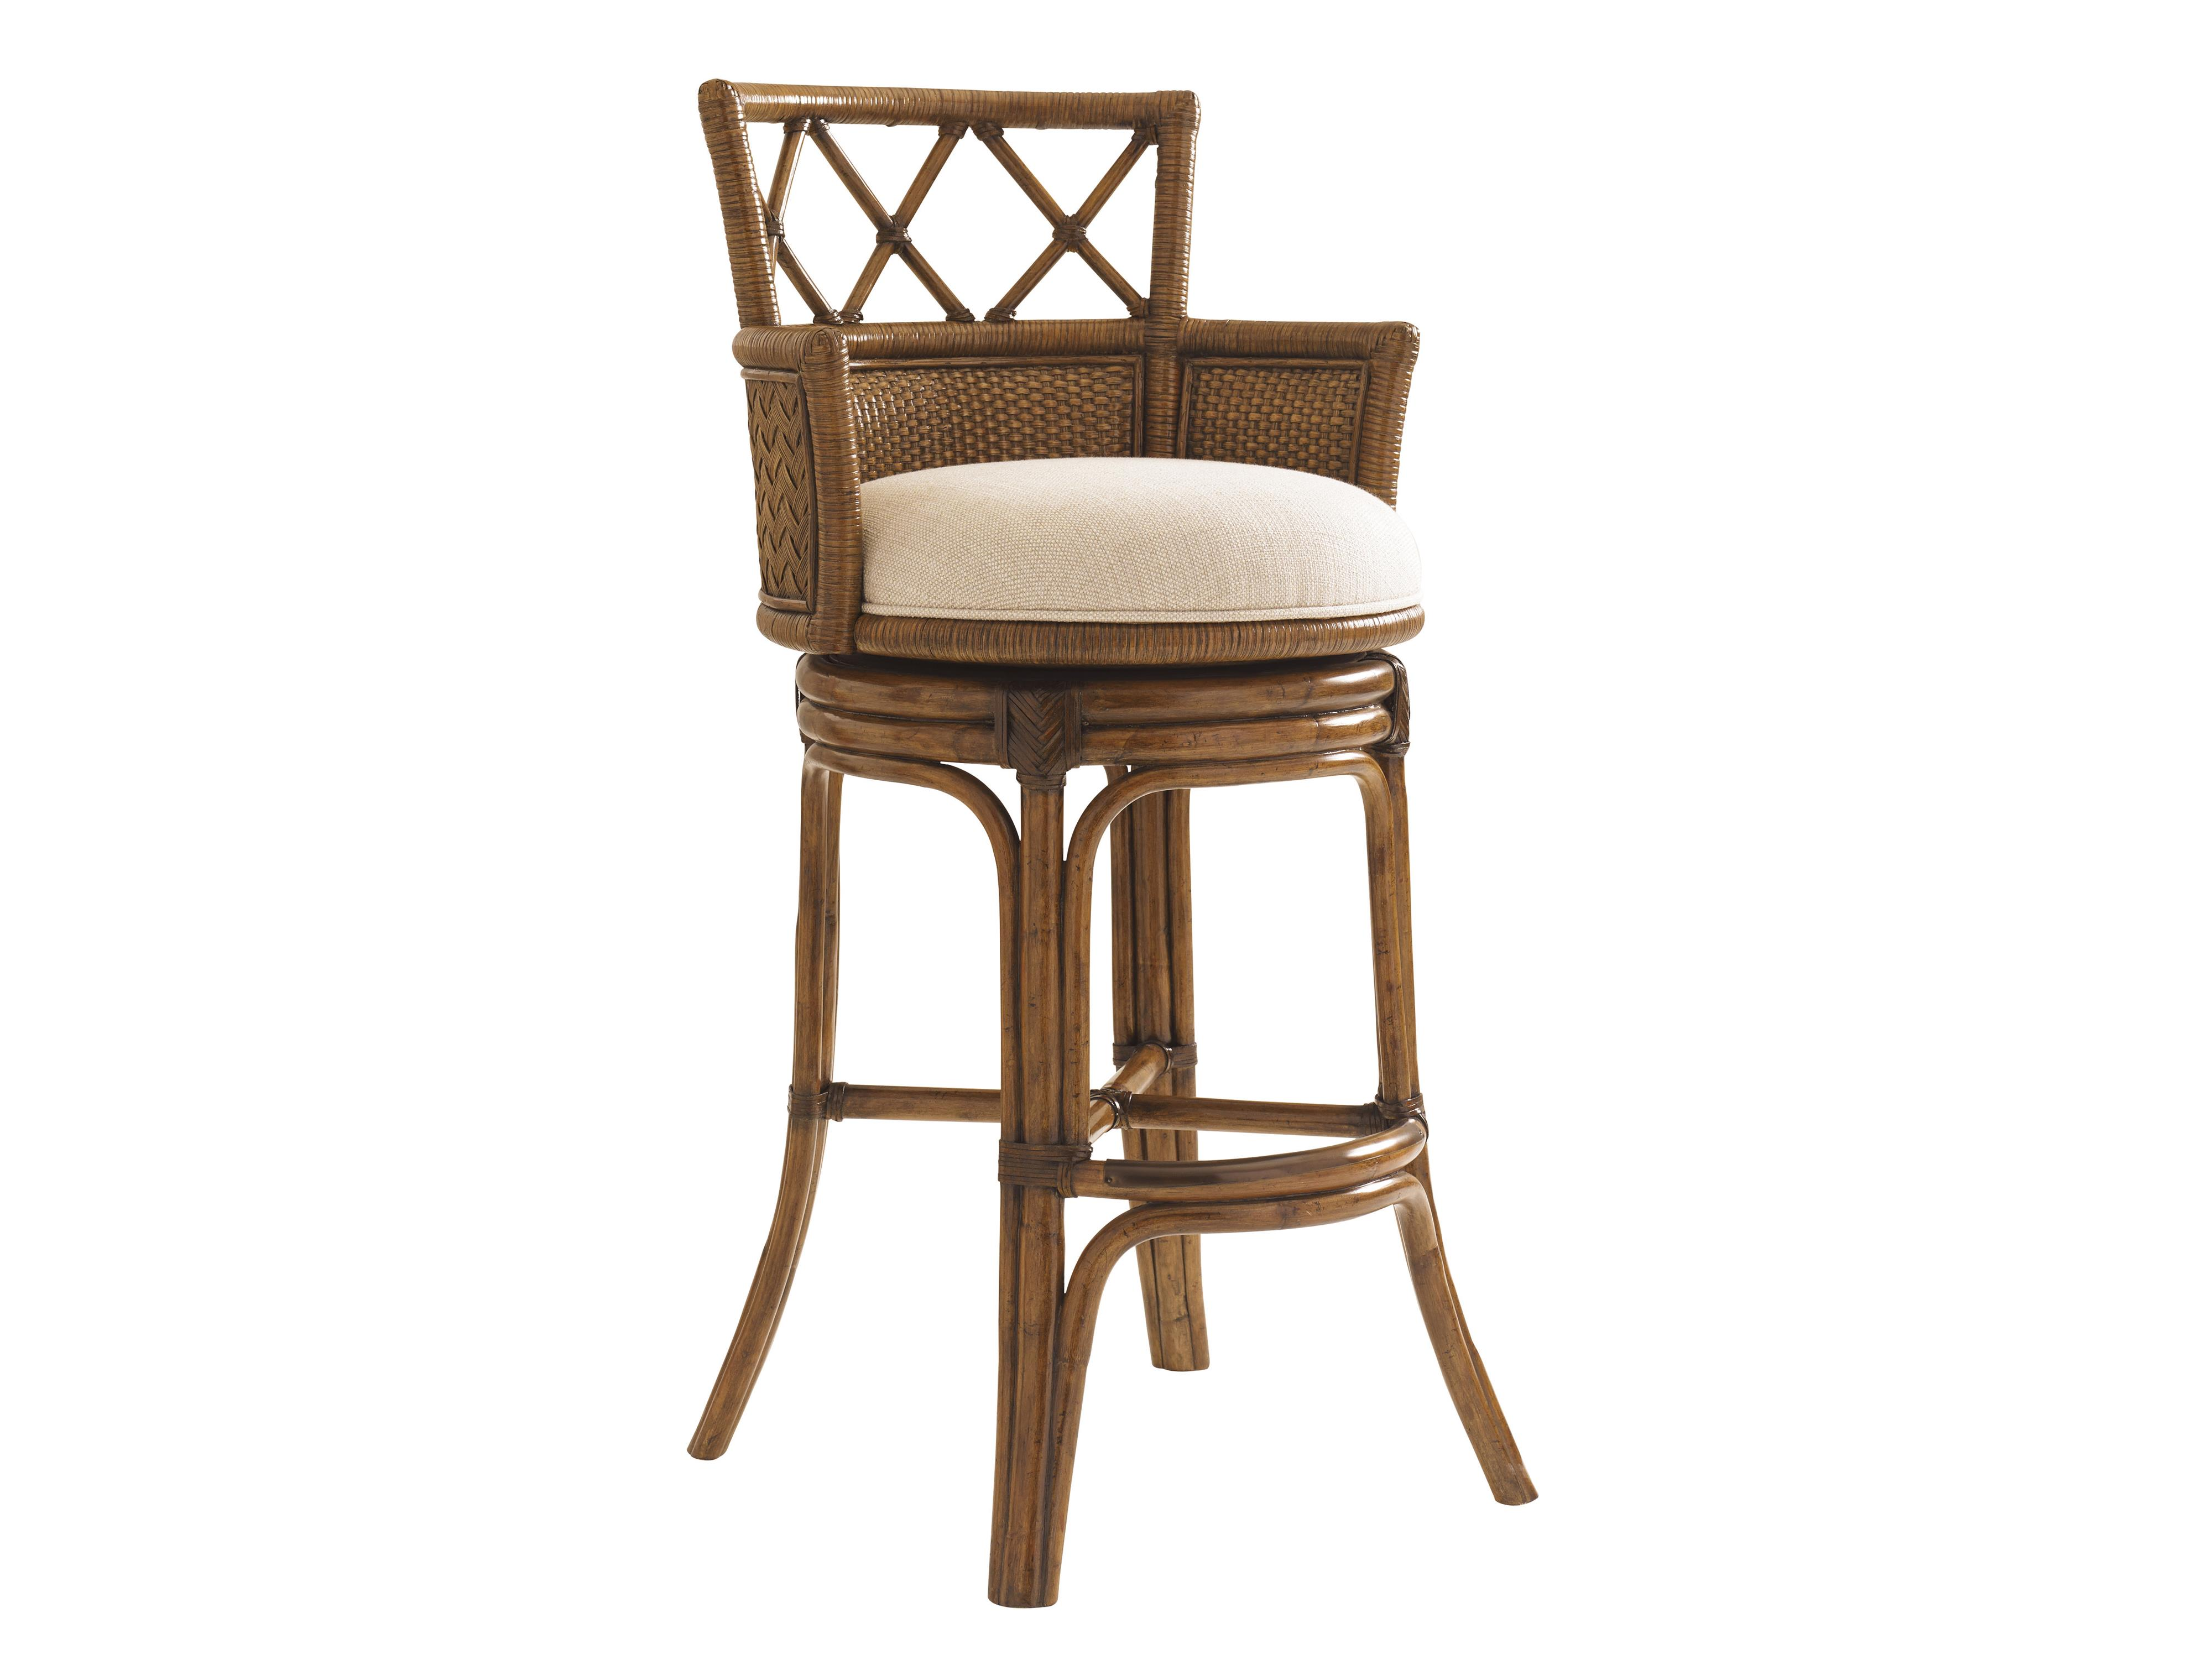 Customizable Kamala Bay Swivel Bar Stool